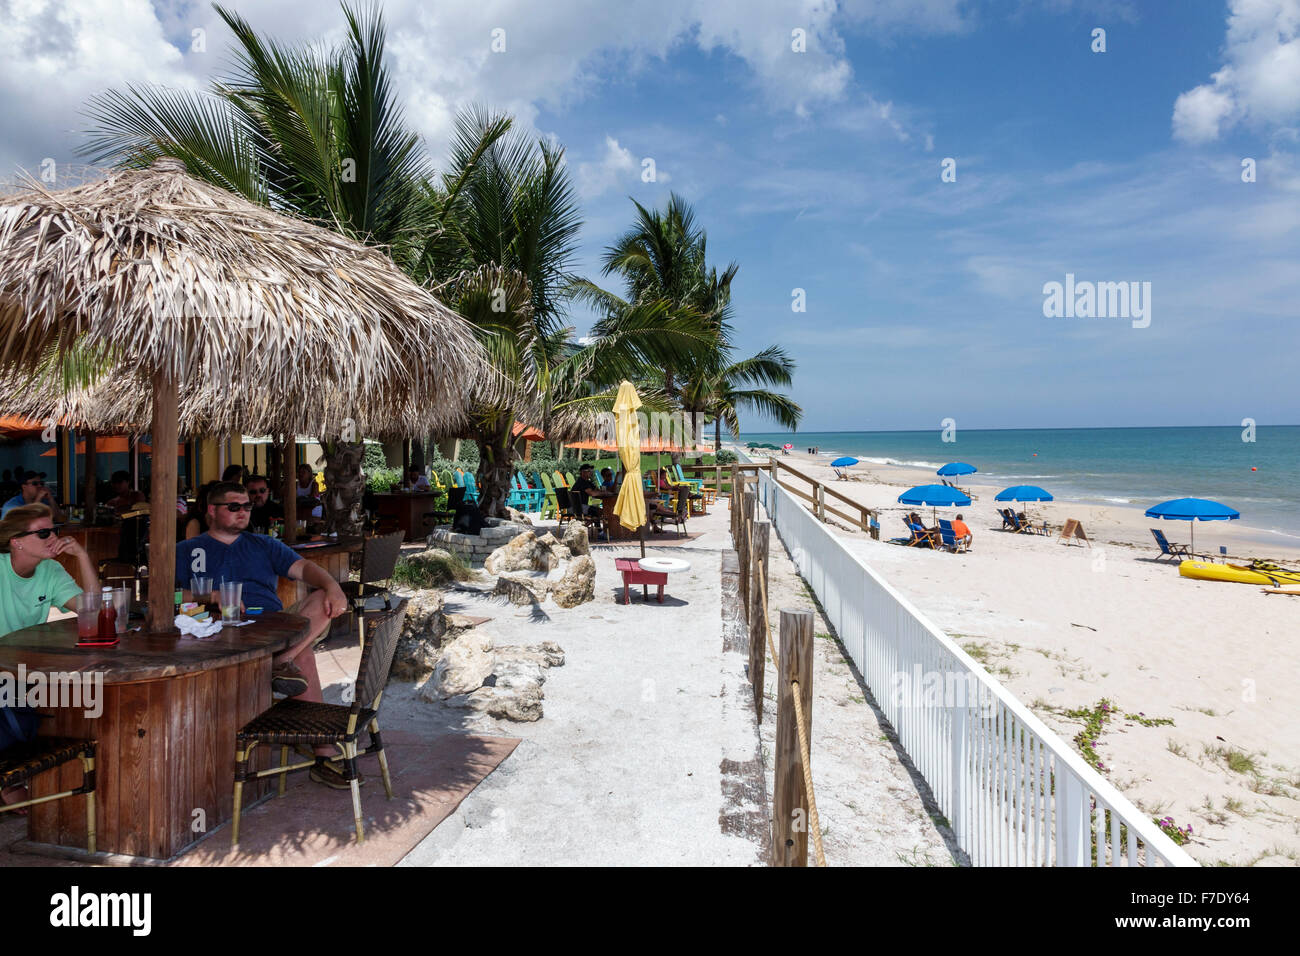 Vero Beach Florida North Hutchinson Orchid Island Mulligan's Beach House Restaurant Tiki Stil Regenschirm alfresco Stockbild